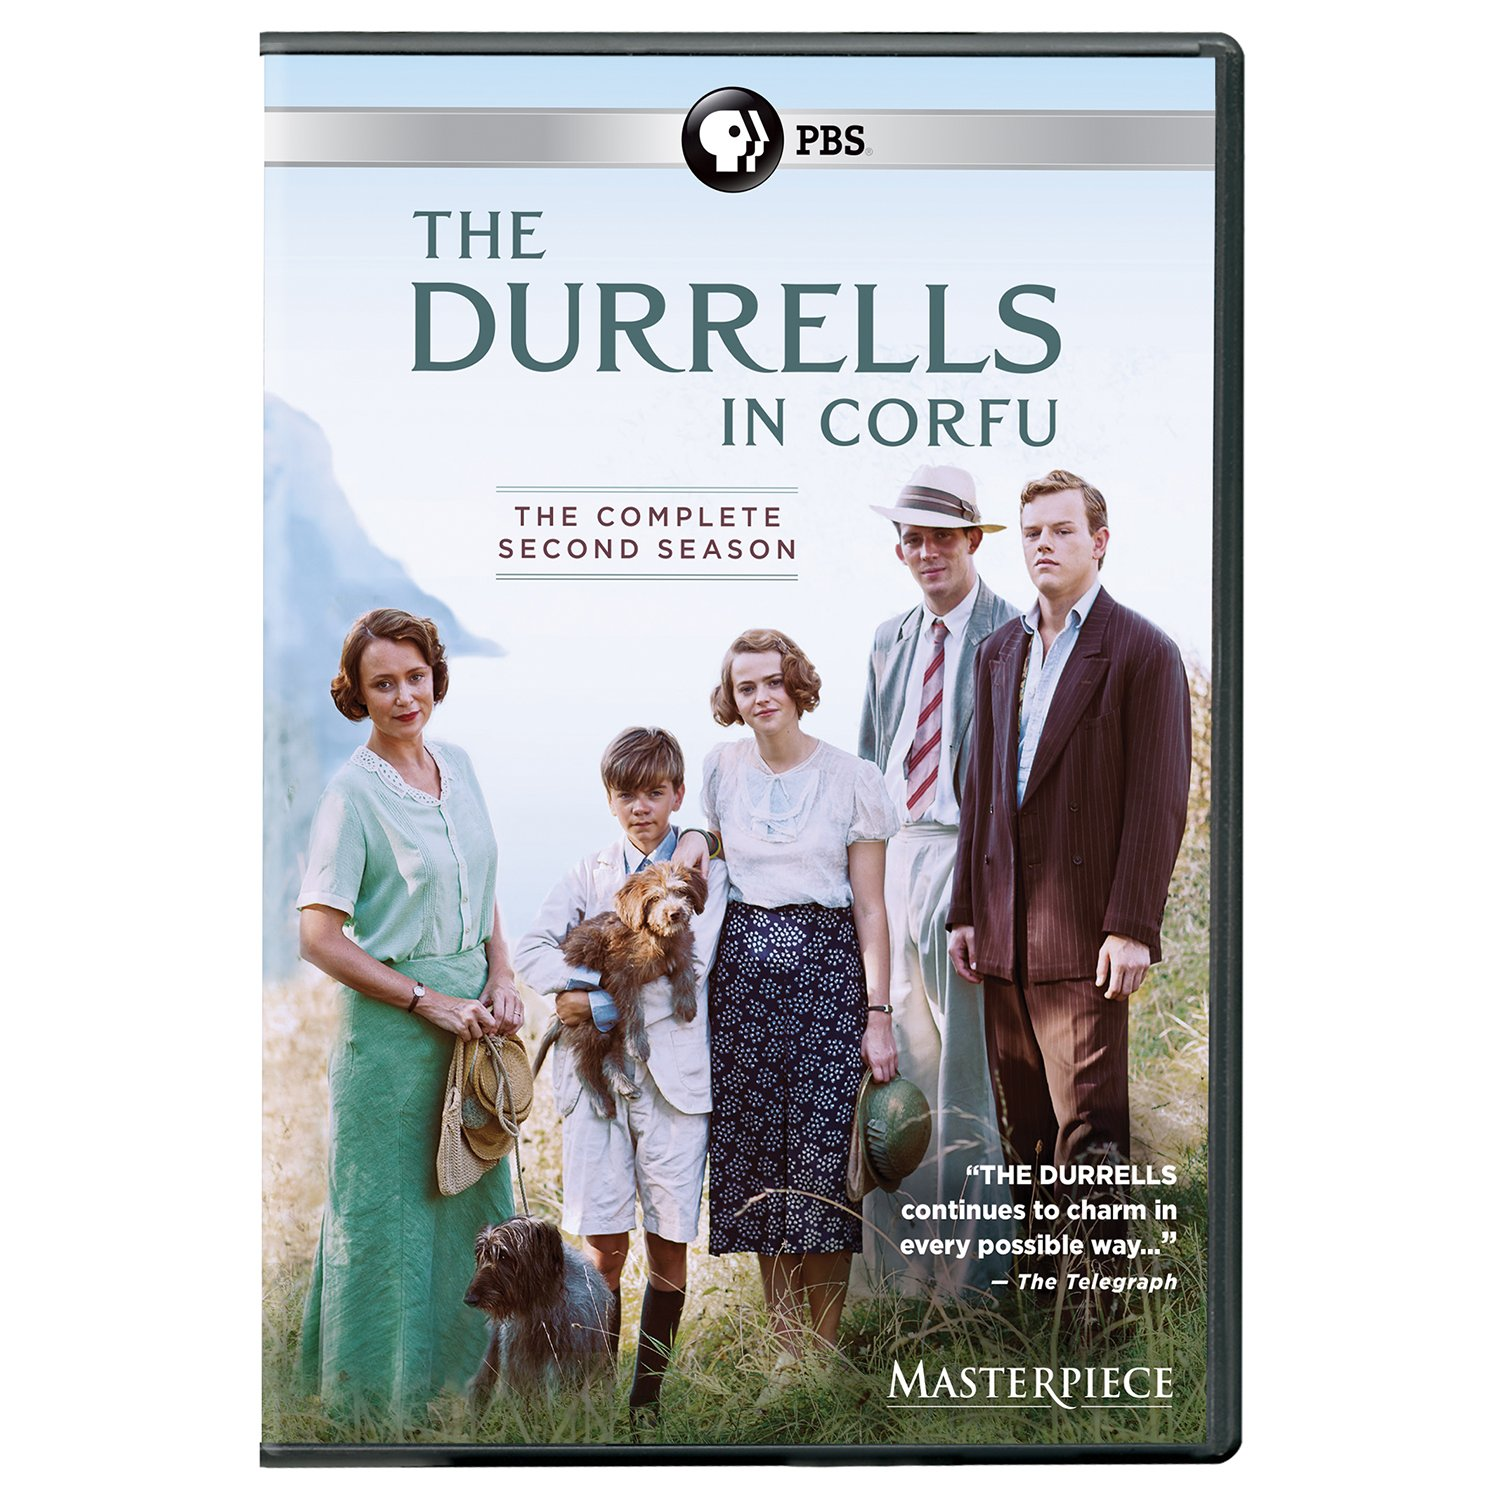 Book Cover: Masterpiece: The Durrells in Corfu Season 2 UK Edition